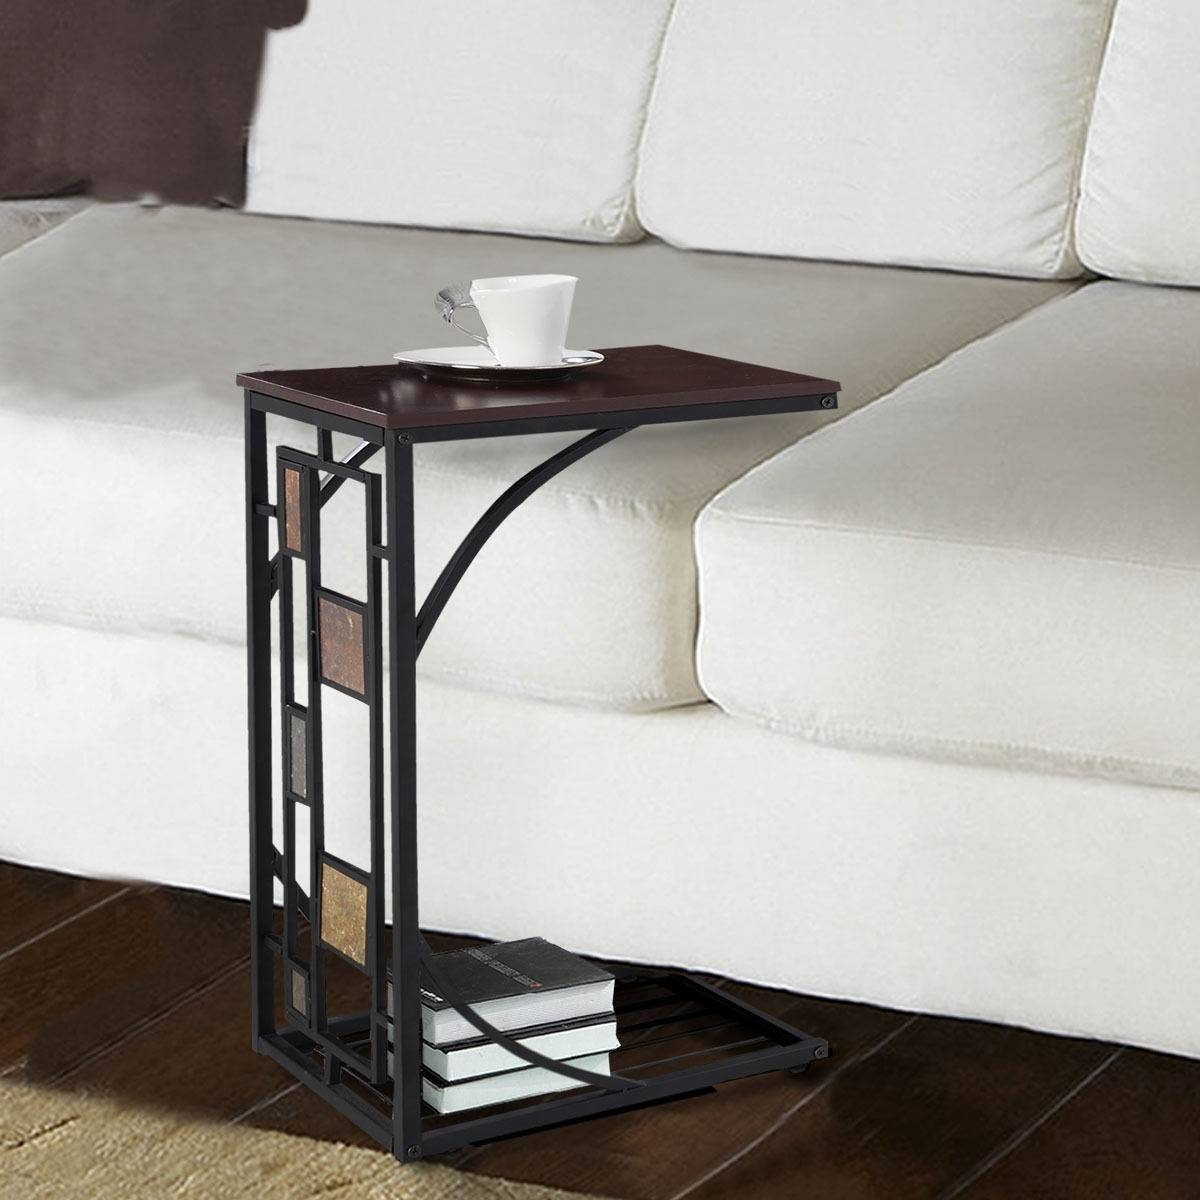 Lift Top Coffee Table With Hidden Storage Compartment - Coffee throughout C Coffee Tables (Image 17 of 30)